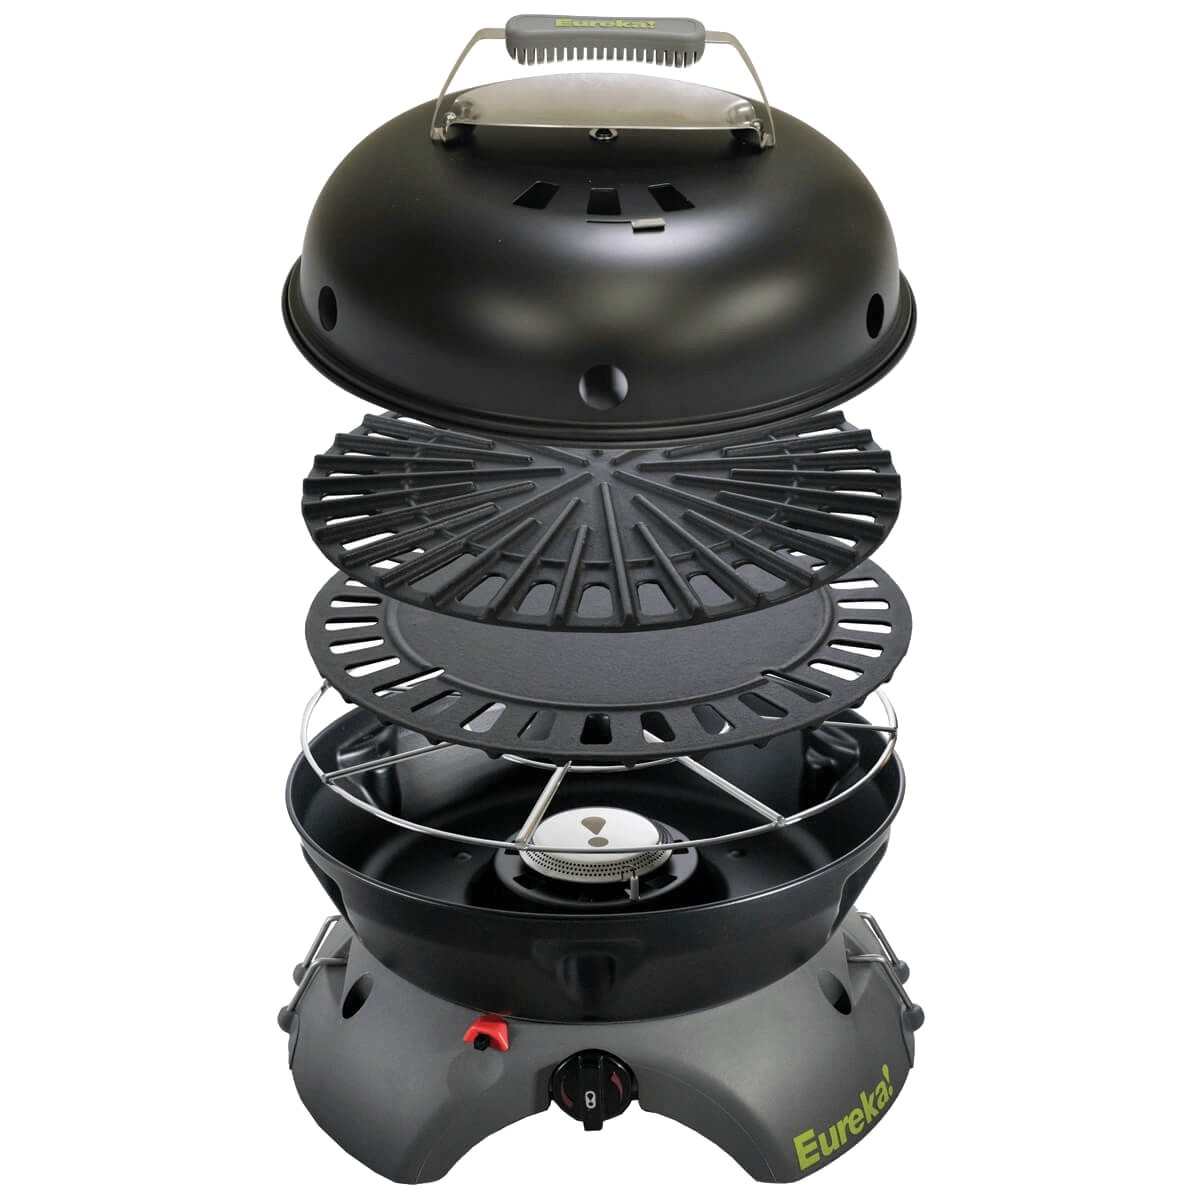 GONZO GRILL COOK SYSTEM